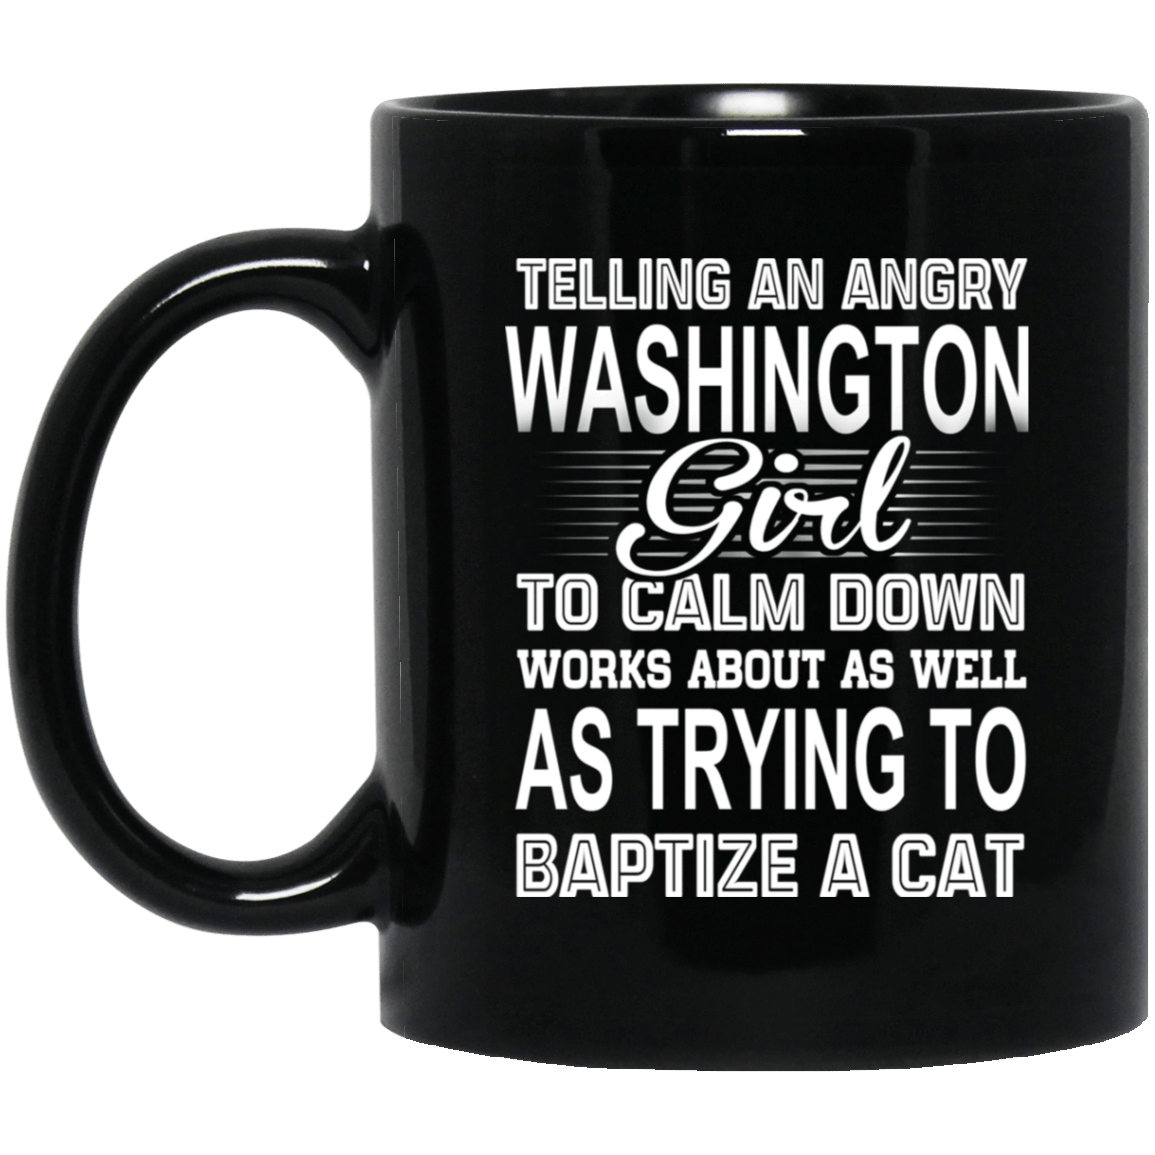 Telling An Angry Washington Girl To Calm Down Works About As Well As Trying To Baptize A Cat Mug 1065-10181-76151610-49307 - Tee Ript